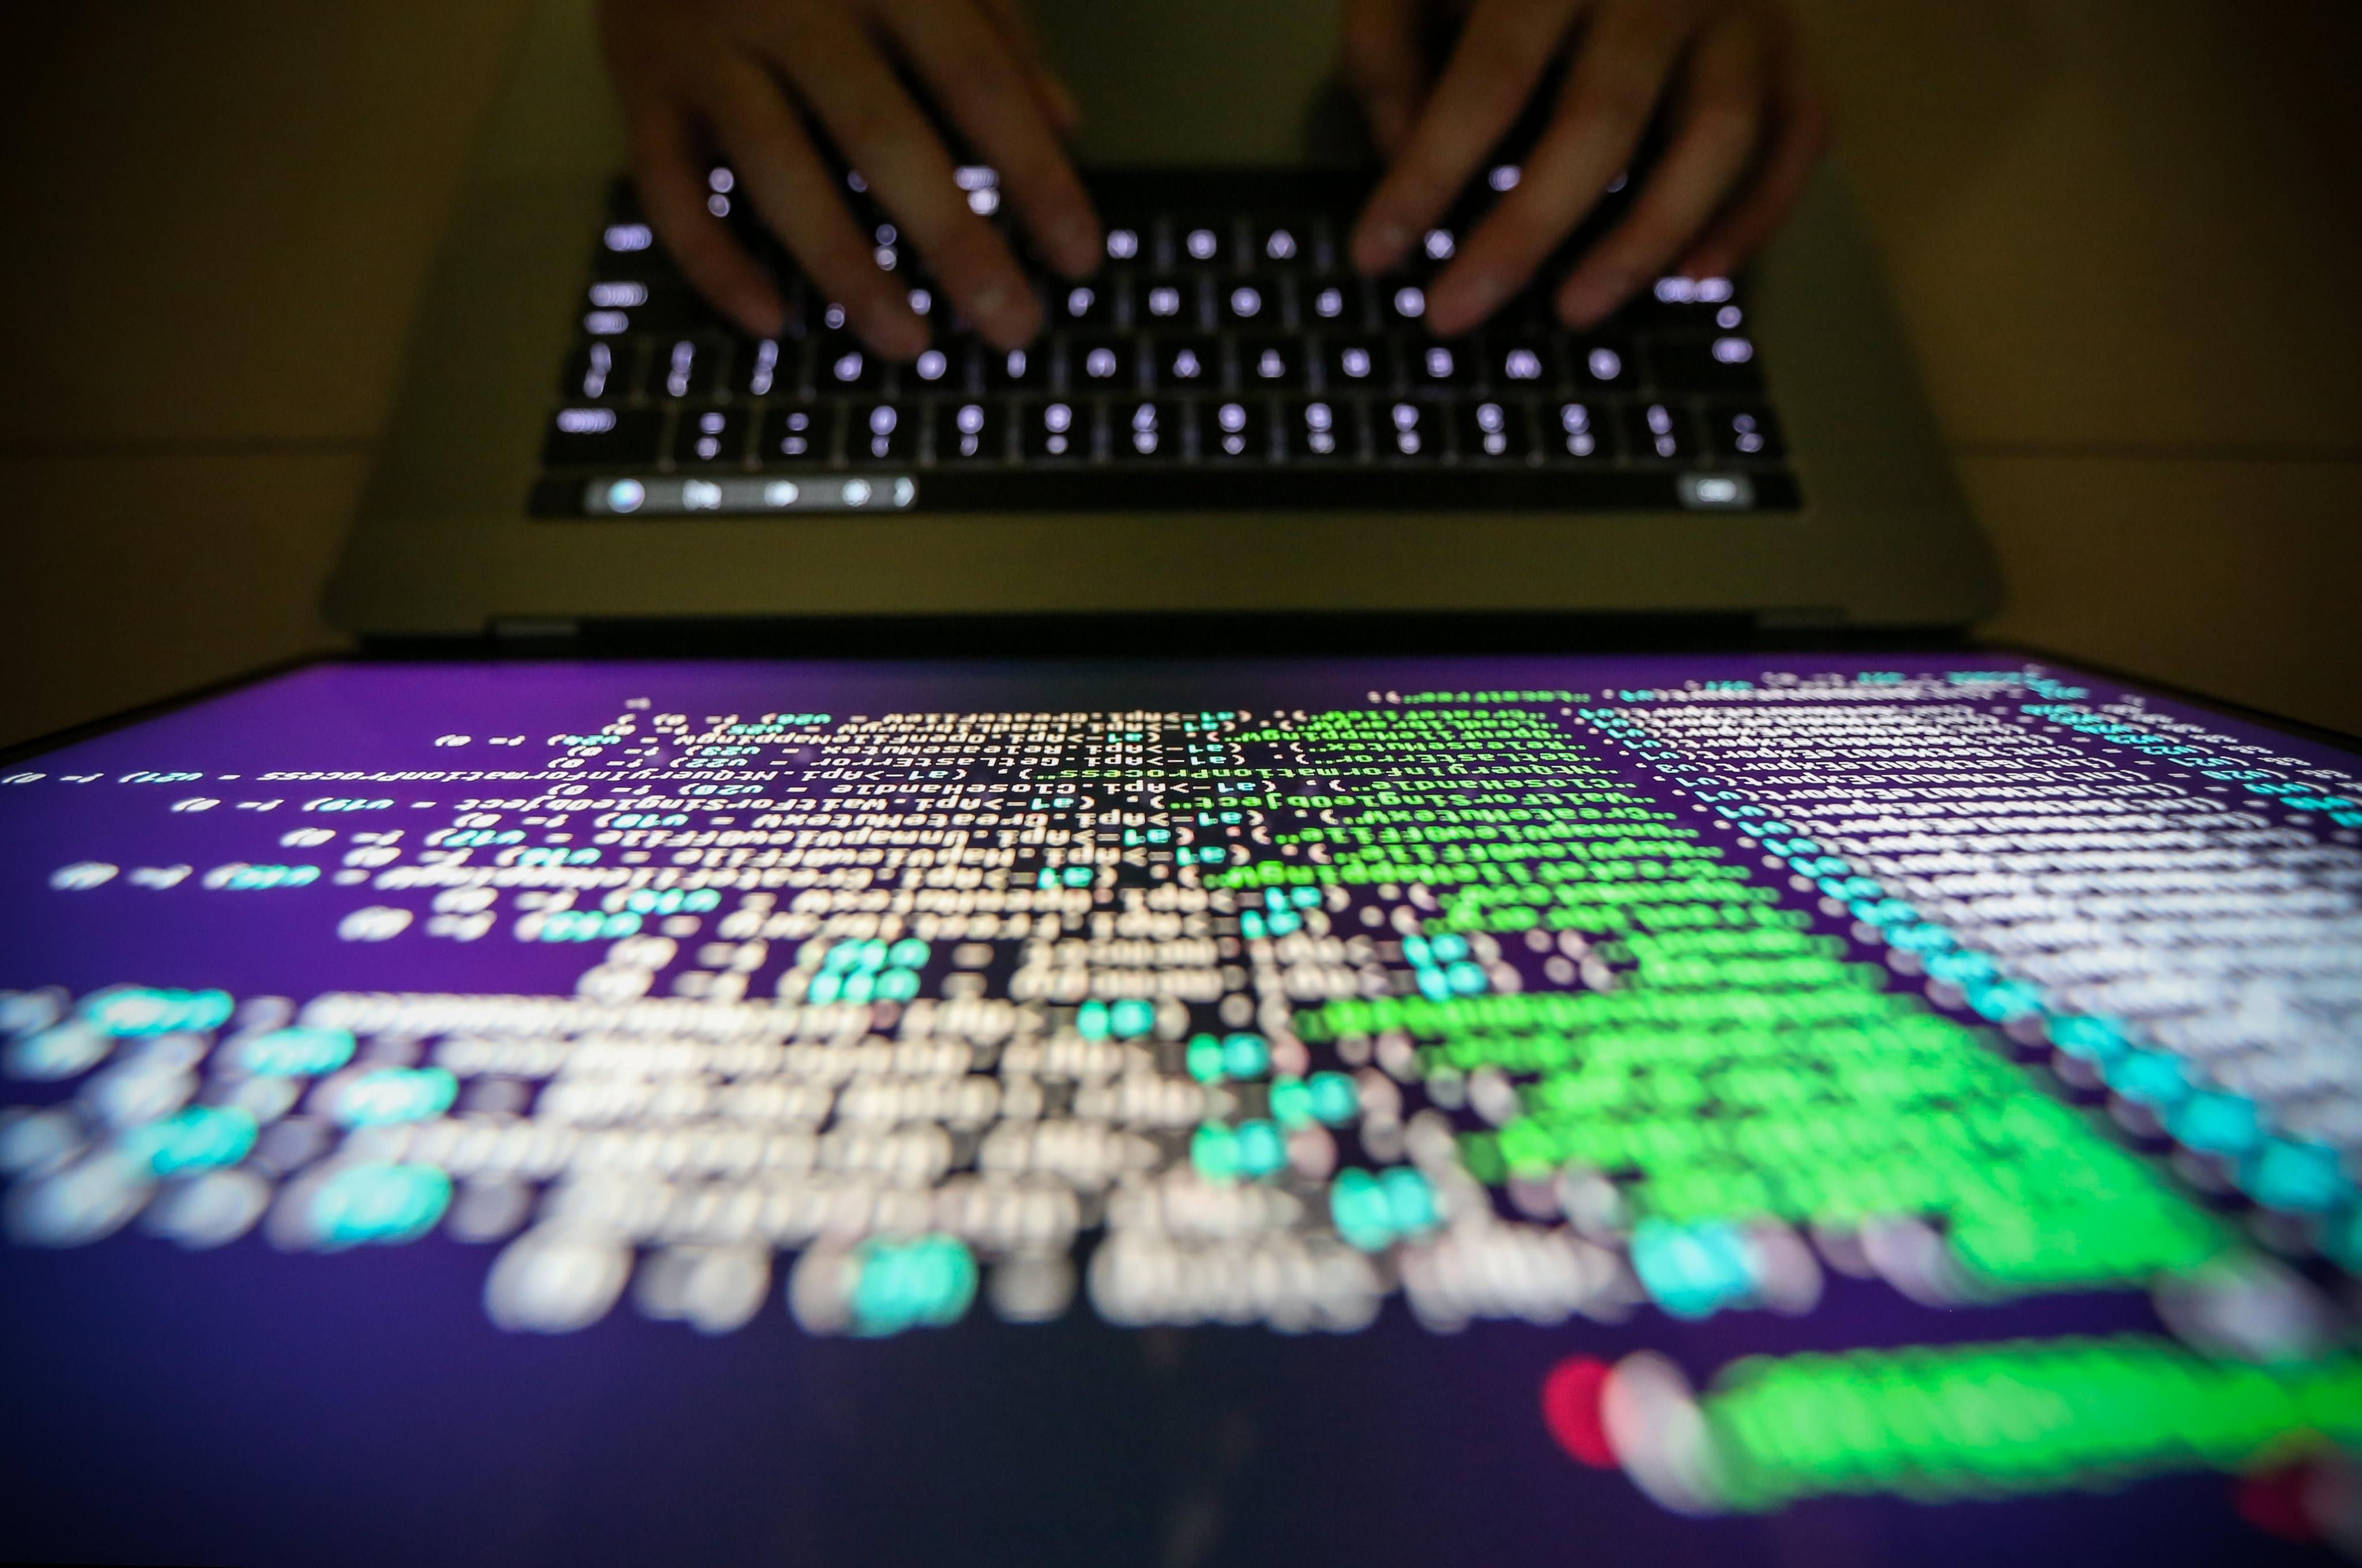 RIT01. Taipei (Taiwan), 12/05/2017.- A programer shows a sample of decrypting source code in Taipei, Taiwan, 13 May, 2017. According to news reports, a 'WannaCry' ransomware cyber attack hits thousands of computers in 99 countries encrypting files from affected computer units and demanding 300 US dollars through bitcoin to decrypt the files. (Atentado, Estados Unidos) EFE/EPA/RITCHIE B. TONGO